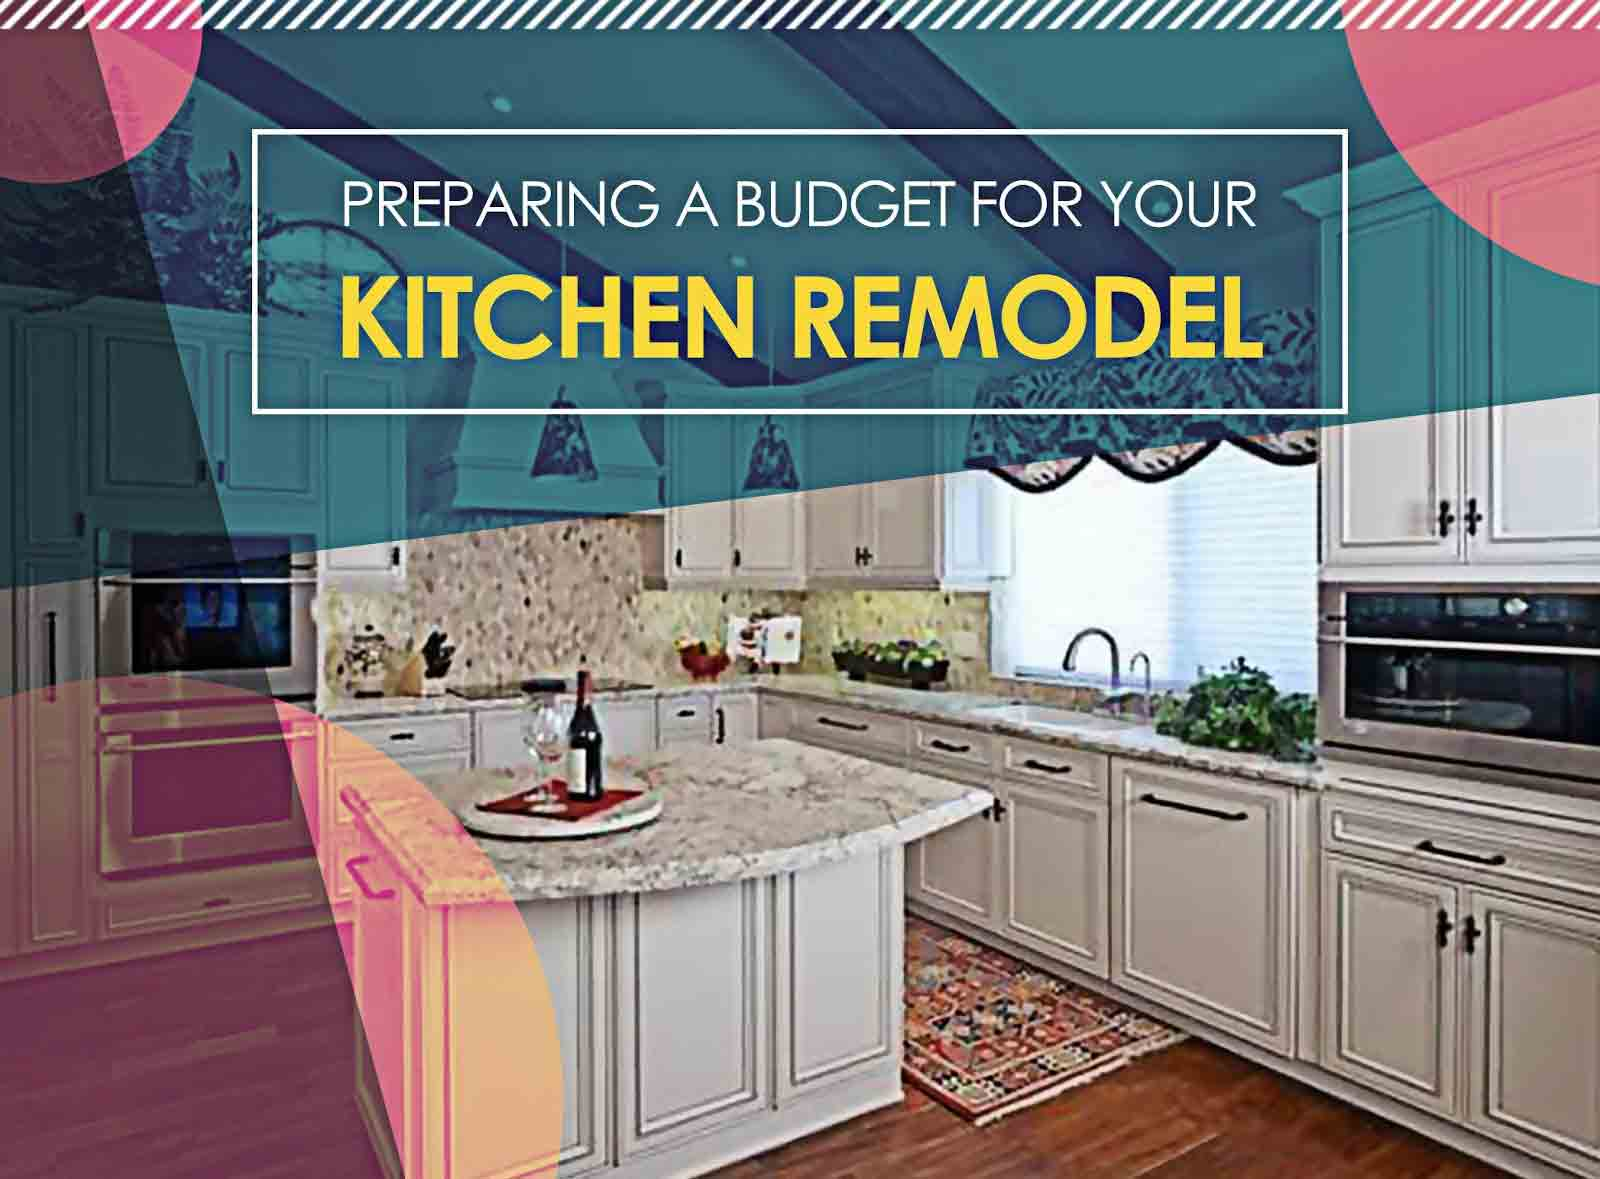 Preparing a Budget for Your Kitchen Remodel